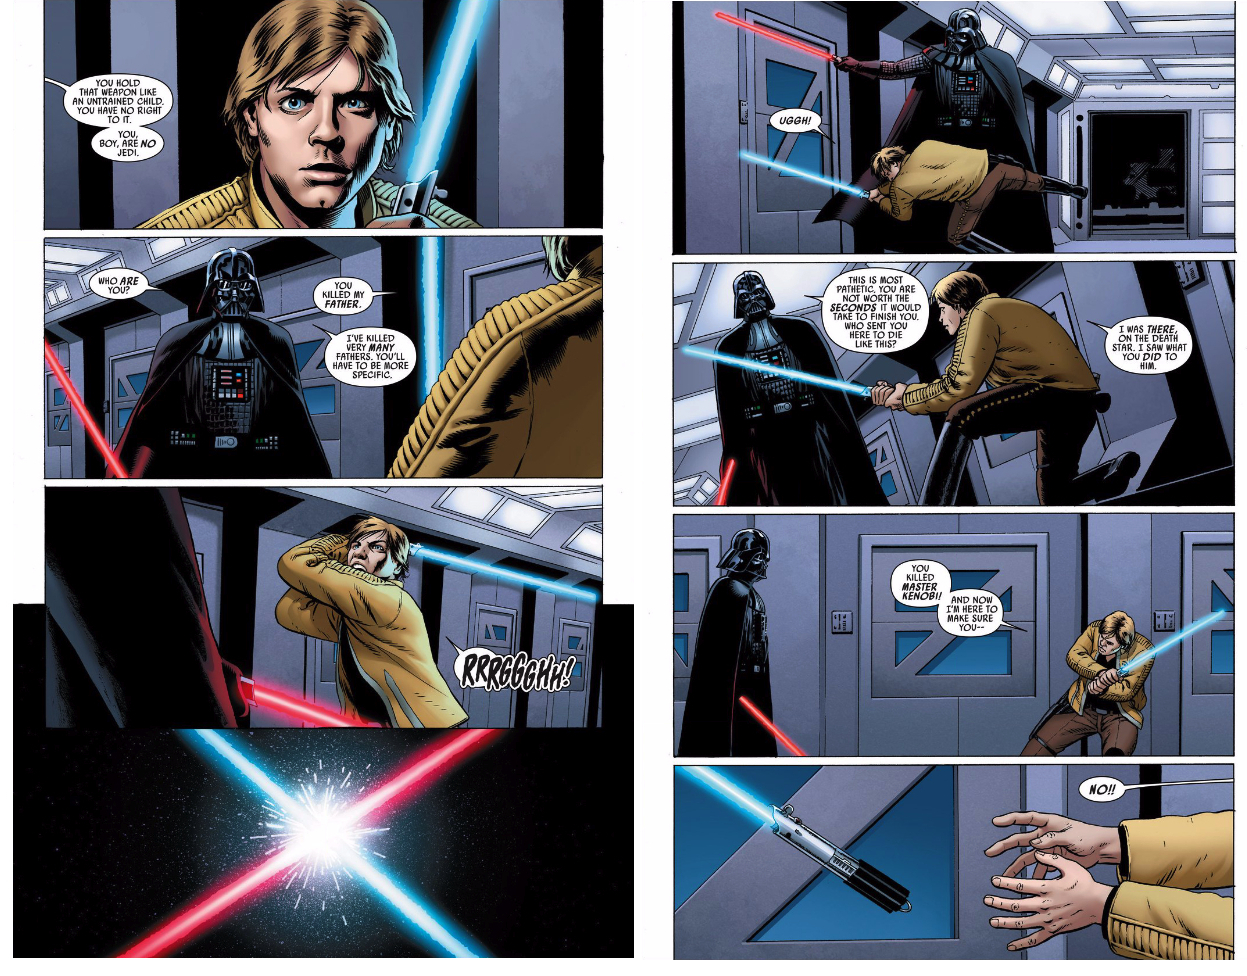 In 'Star Wars' (2015) #2, Luke Skywalker goes toe-to-toe with Darth Vader.